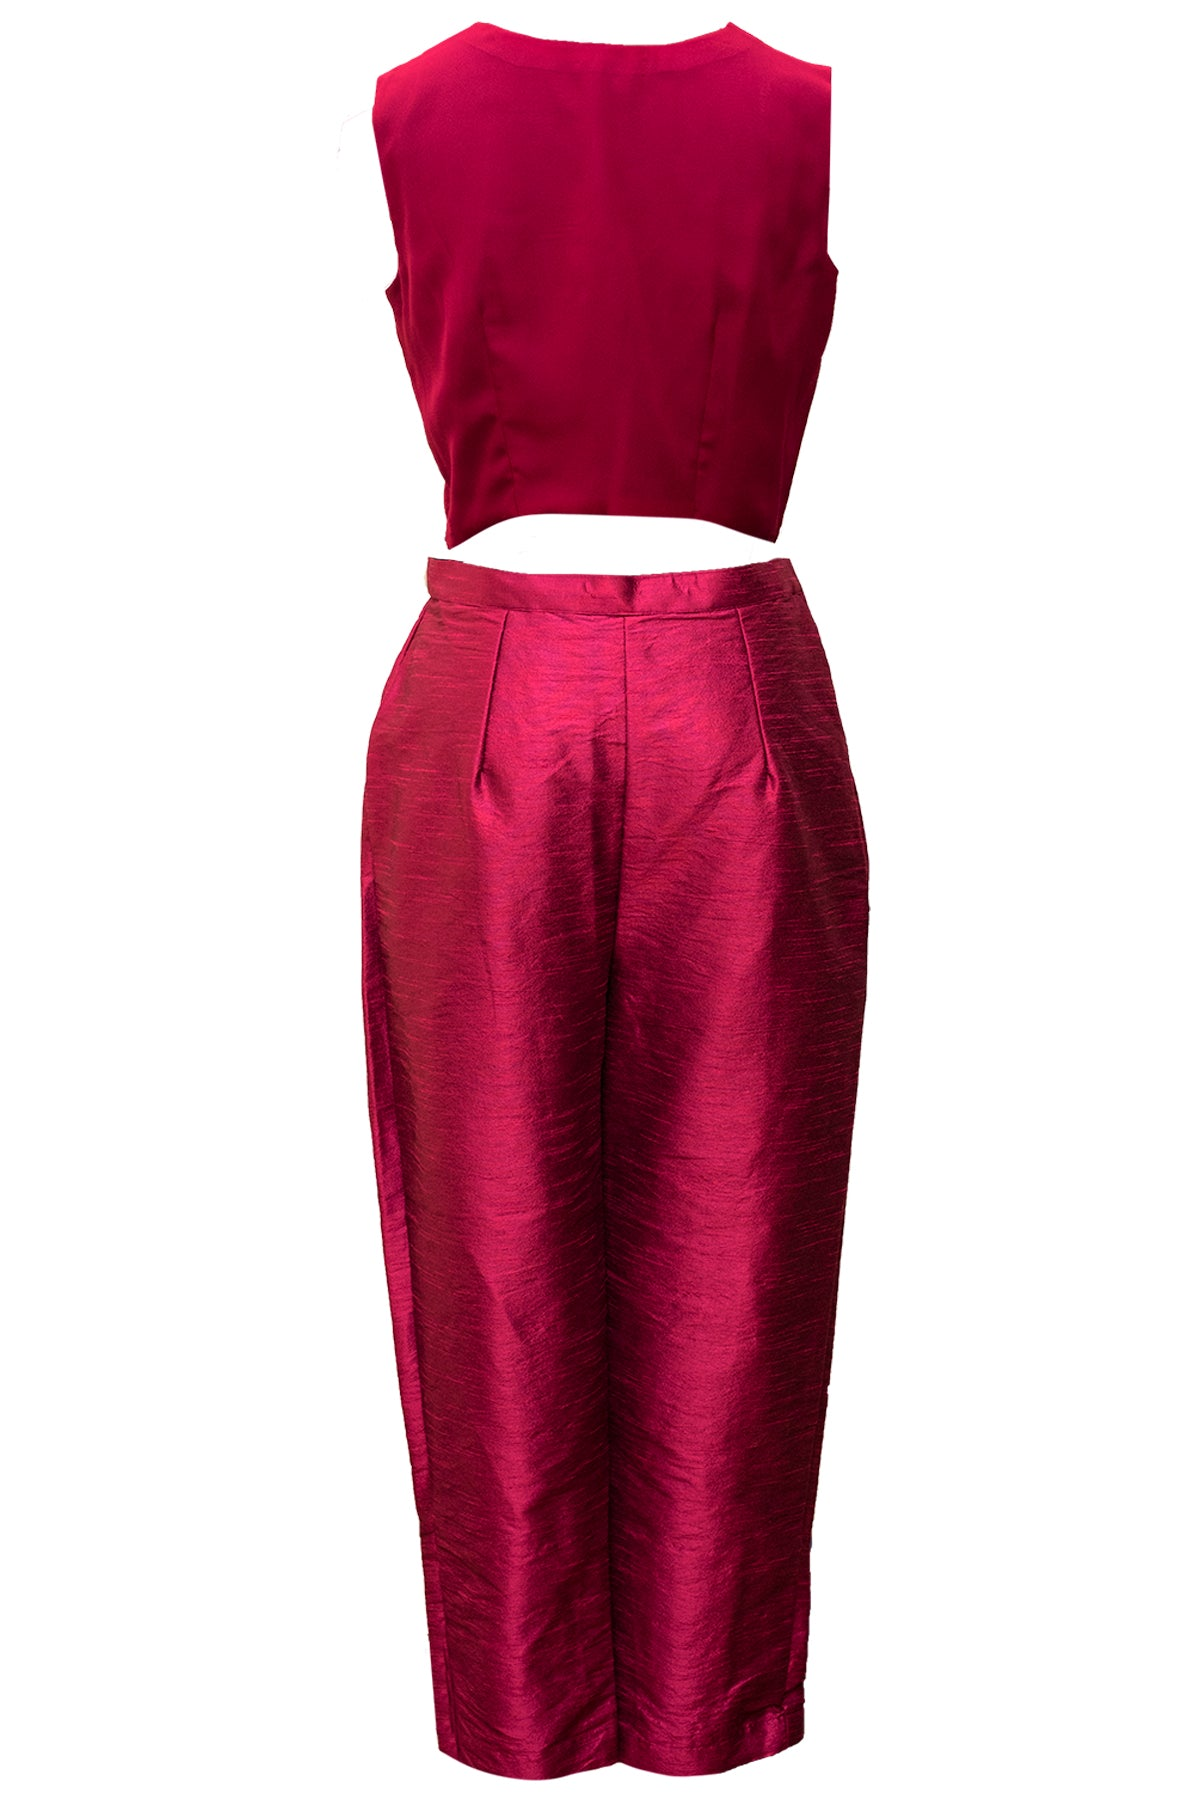 Maroon Crop Top And Pant Set